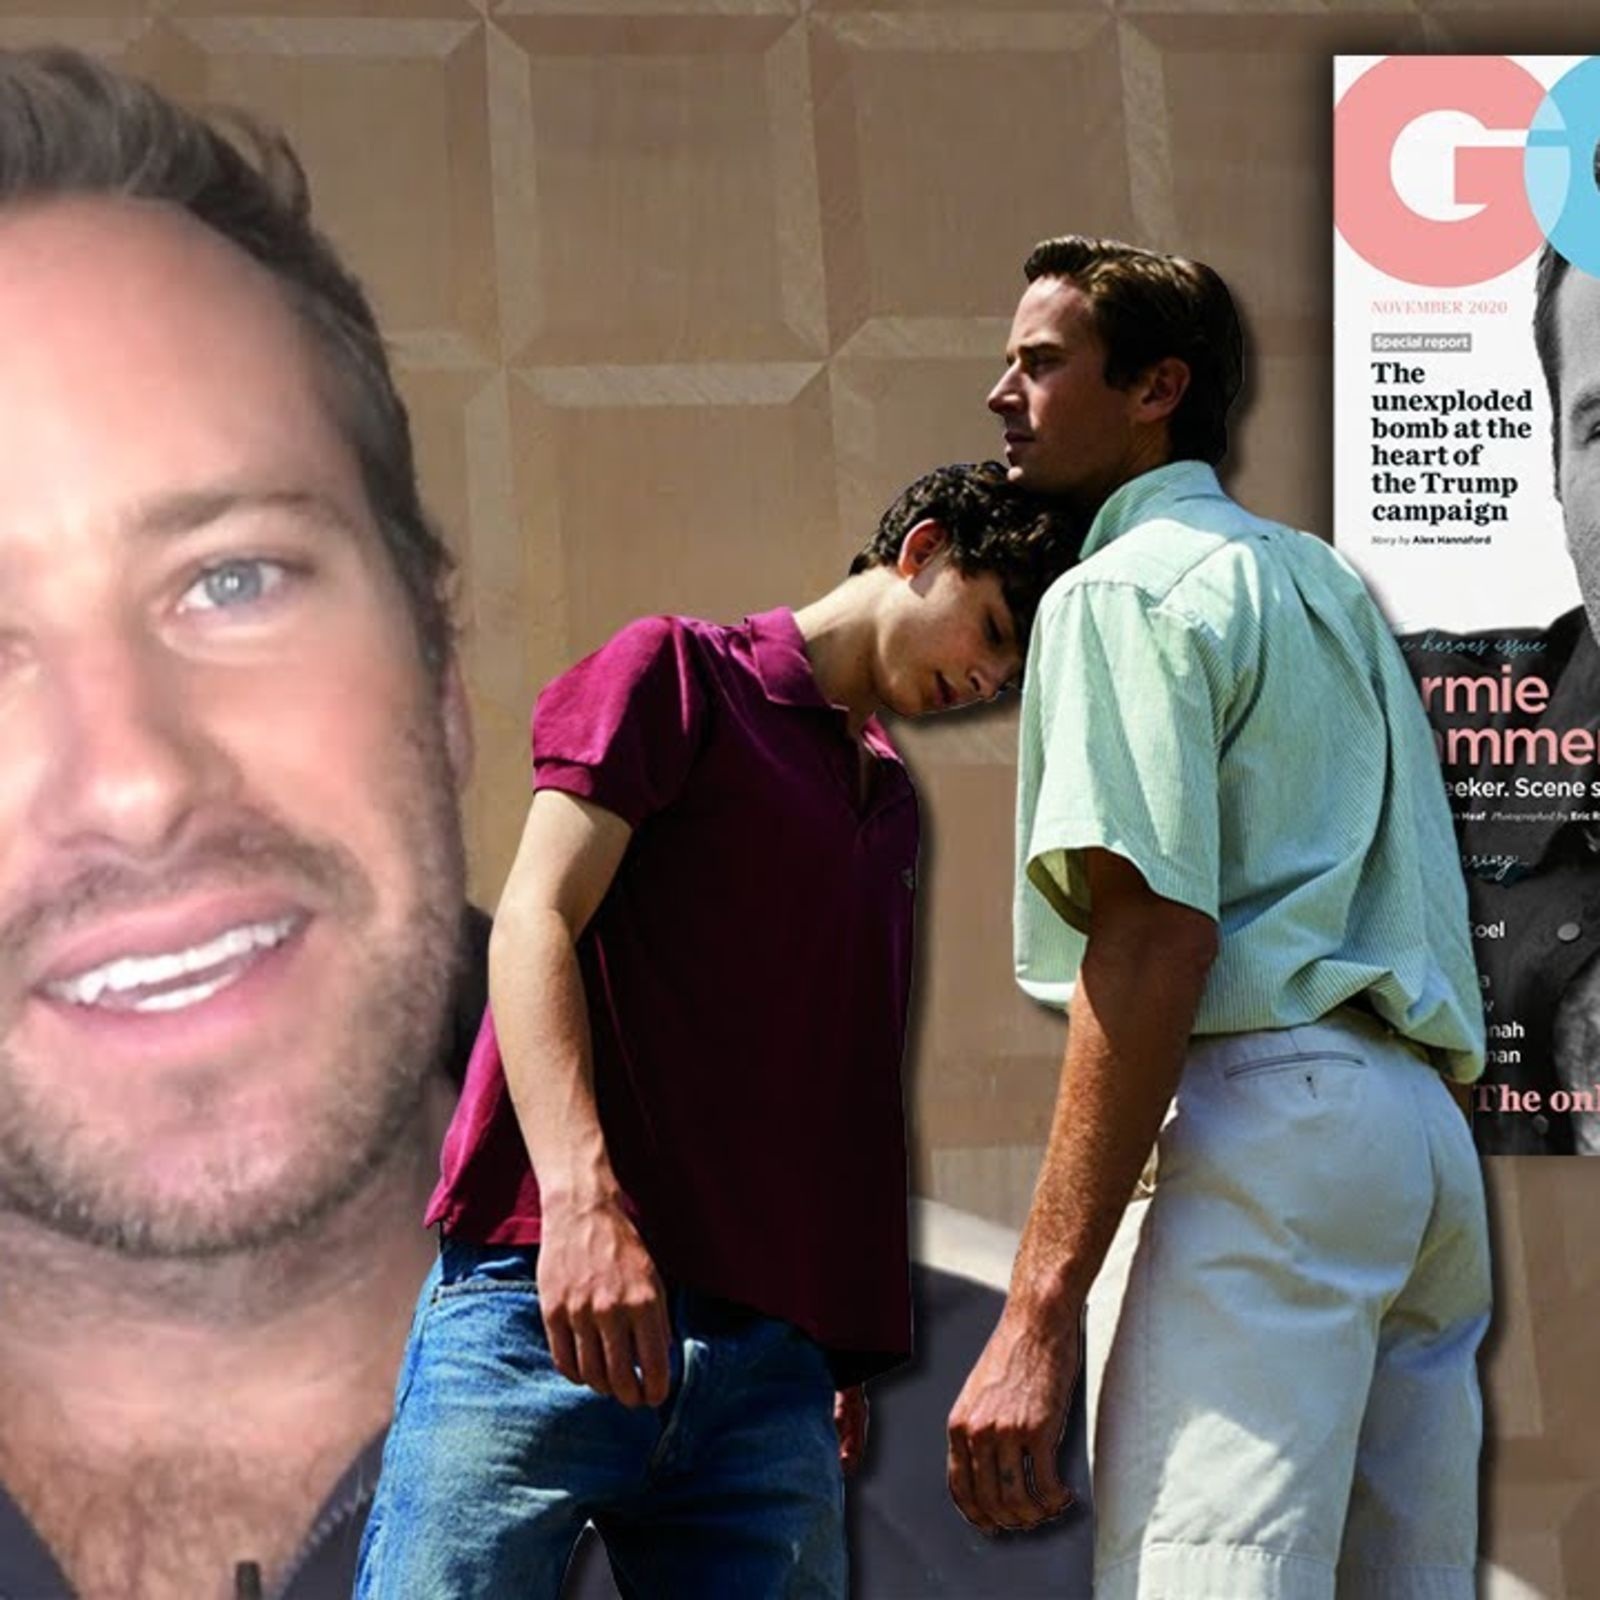 Armie Hammer: 'Peaches are now a part of my everyday life'